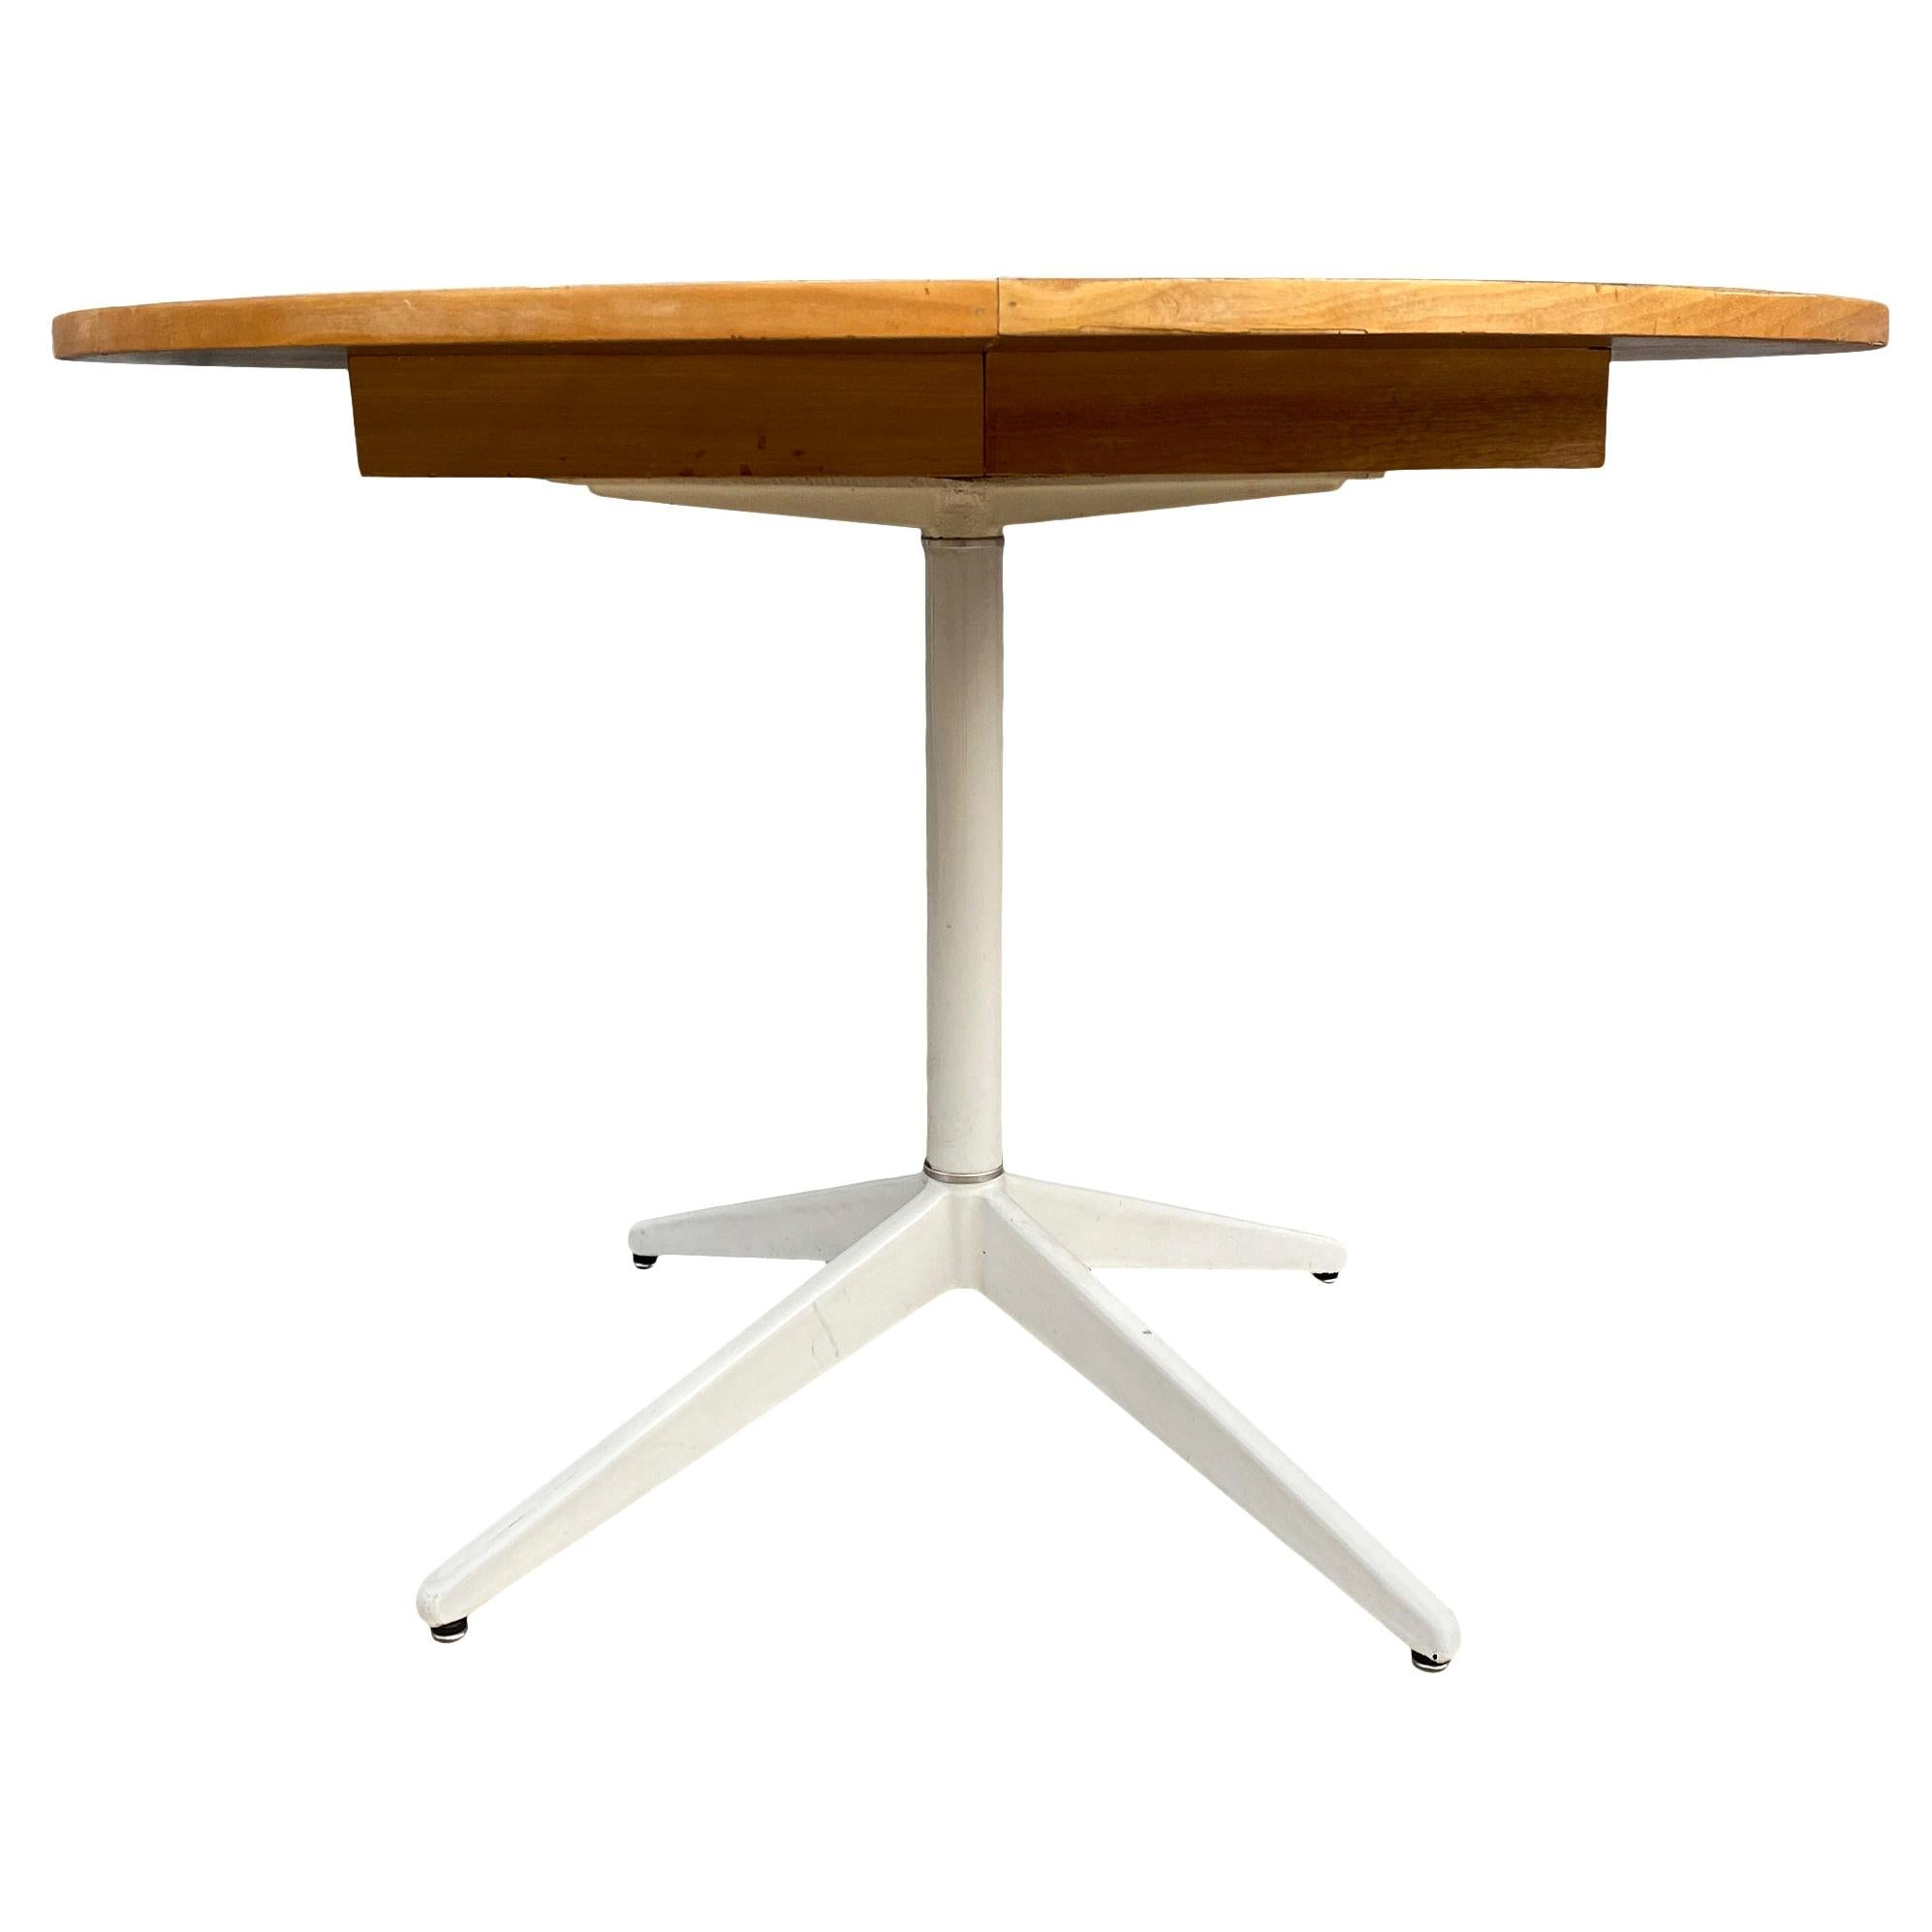 Midcentury George Nelson Herman Miller Expandable Dining Table with 1 Leaf